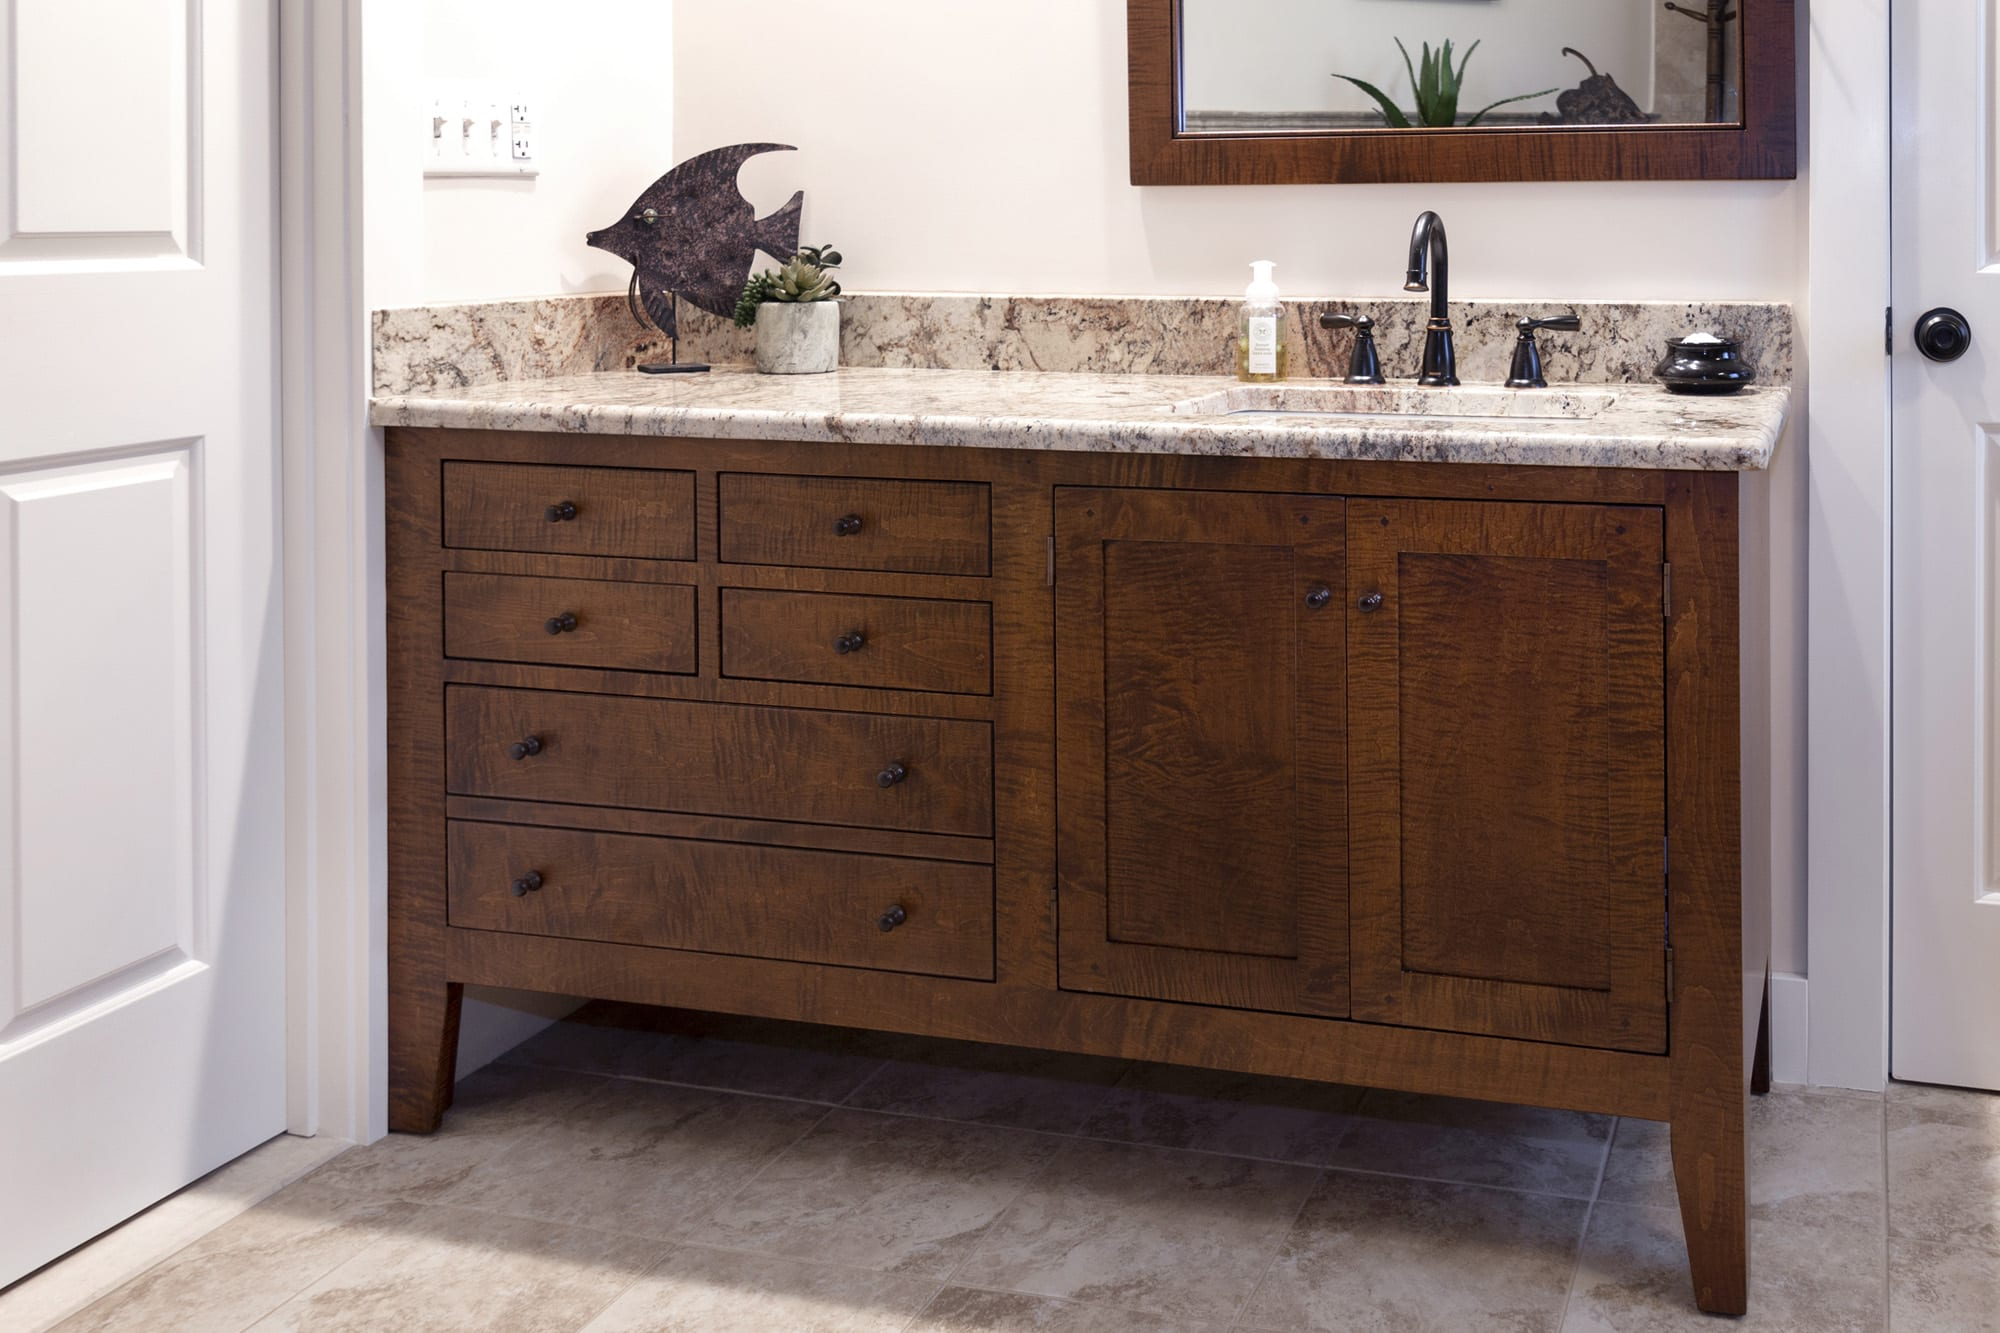 High End Bathroom Vanities Shaker Style Bathroom Vanities Of High Quality In Tiger Maple